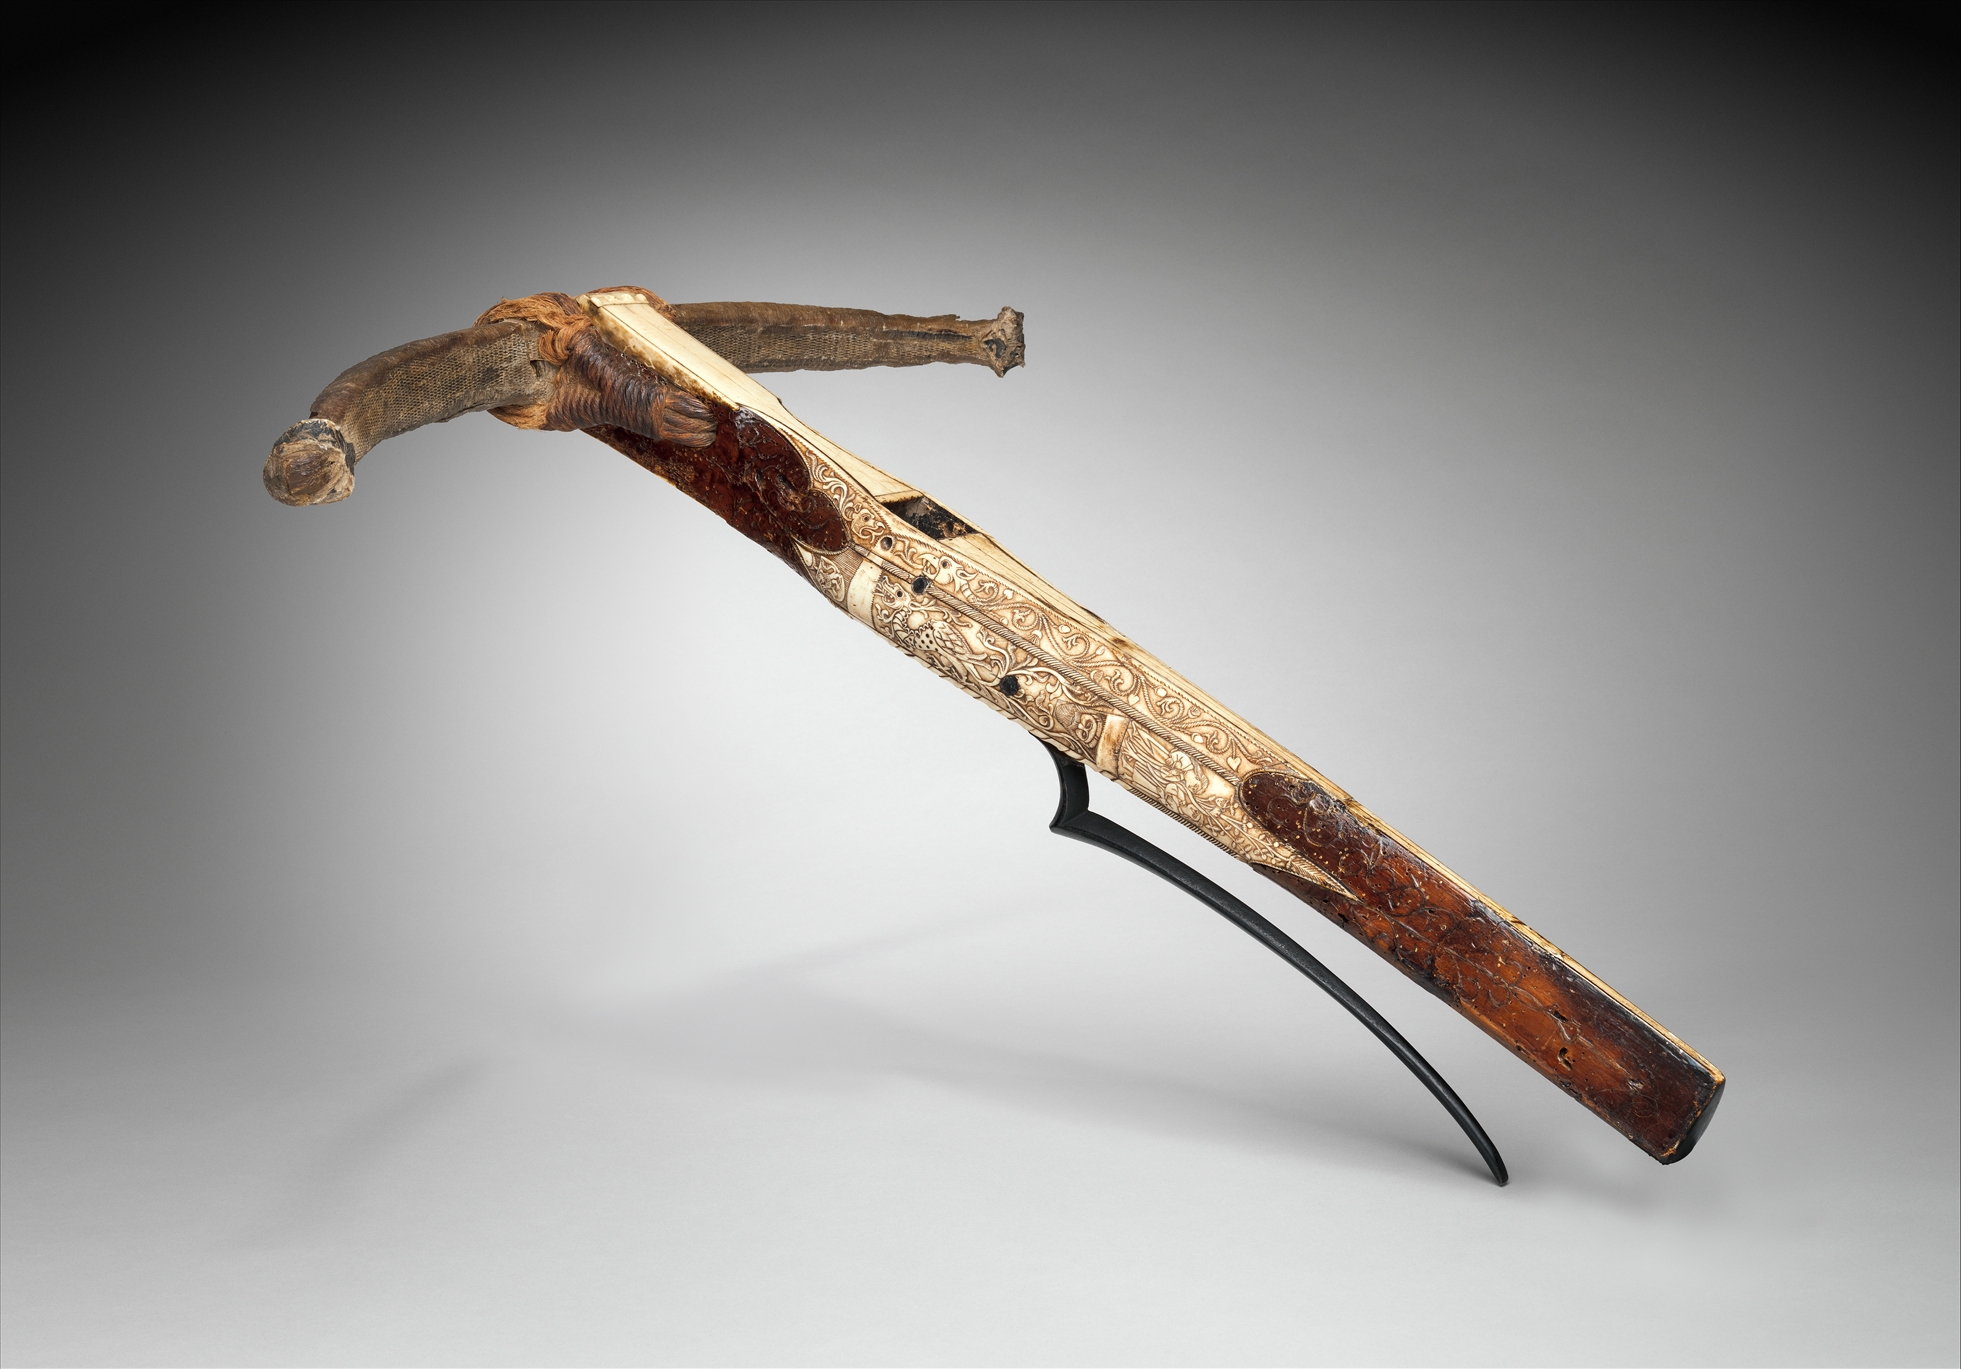 King Mathias' Crossbow Has Been on Display in New York for 100 Years